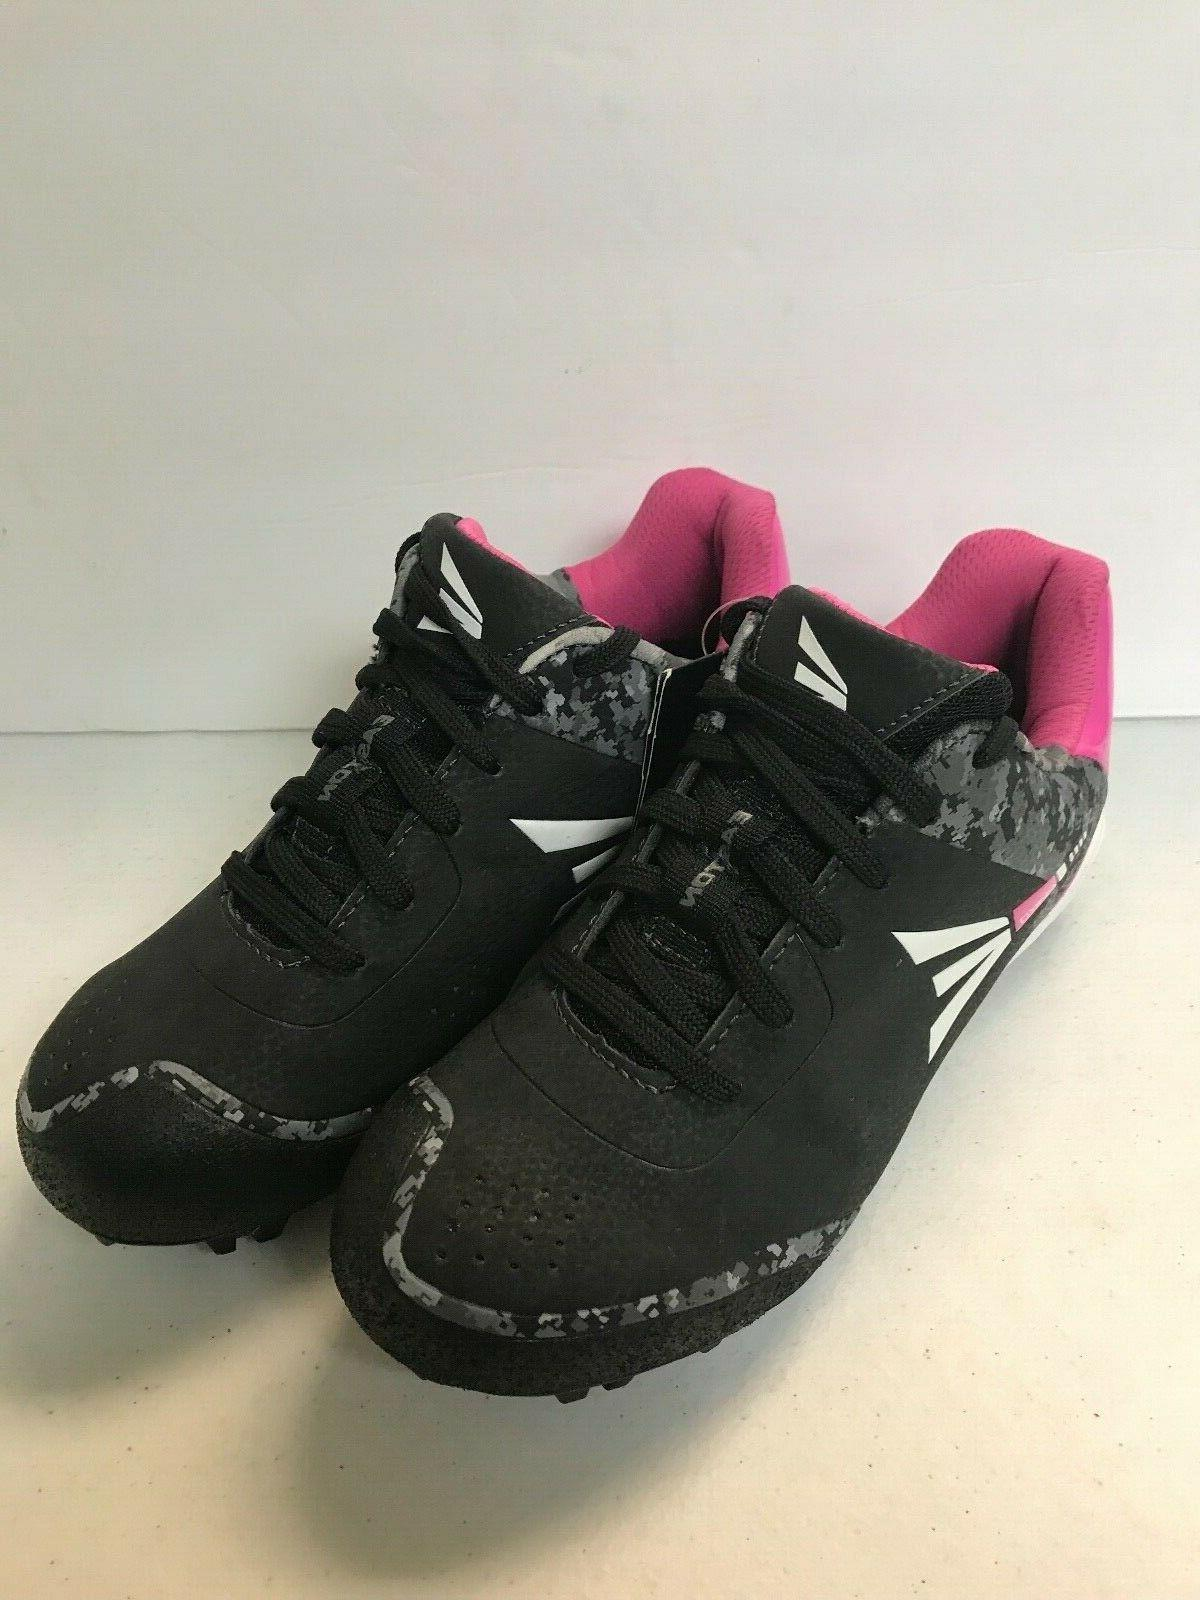 girls softball cleats black and pink sizes